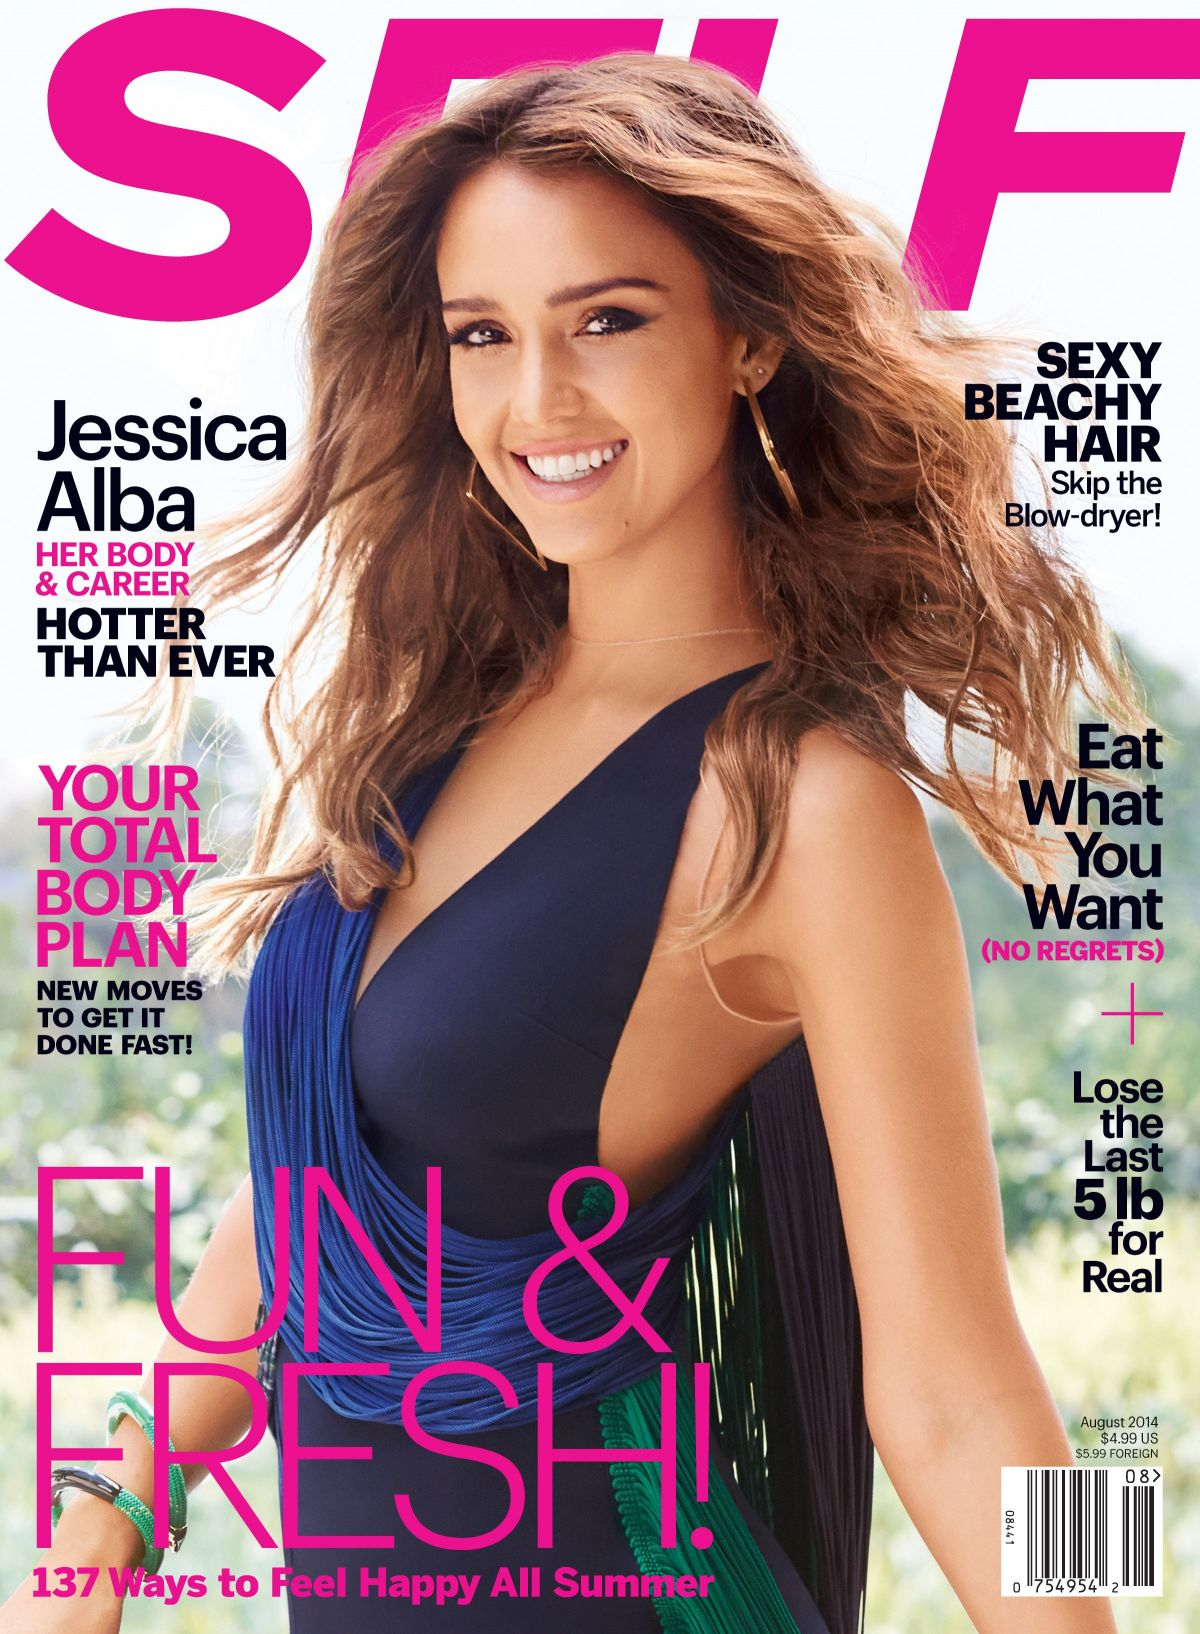 JESSICA ALBA in Self Magazine, August 2014 Issue